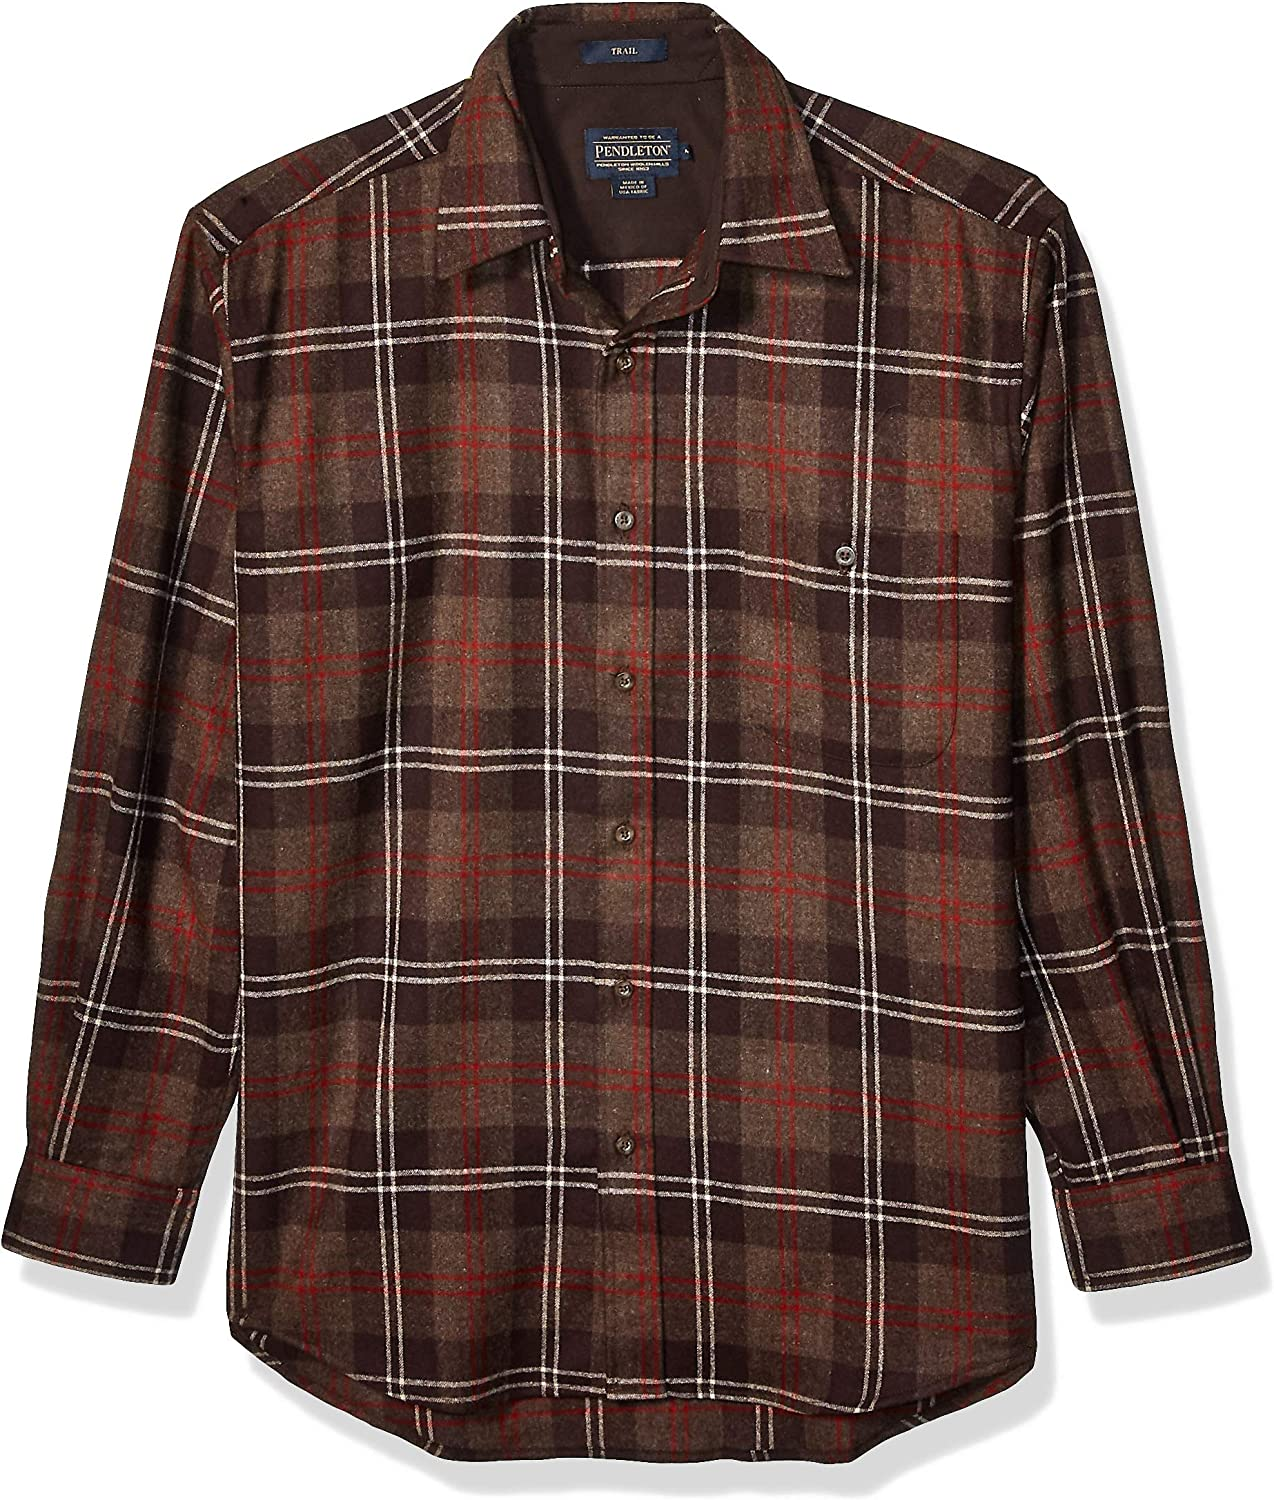 OFFer Pendleton Men's Long Sleeve Max 41% OFF Classic Wool Shirt Fit Trail